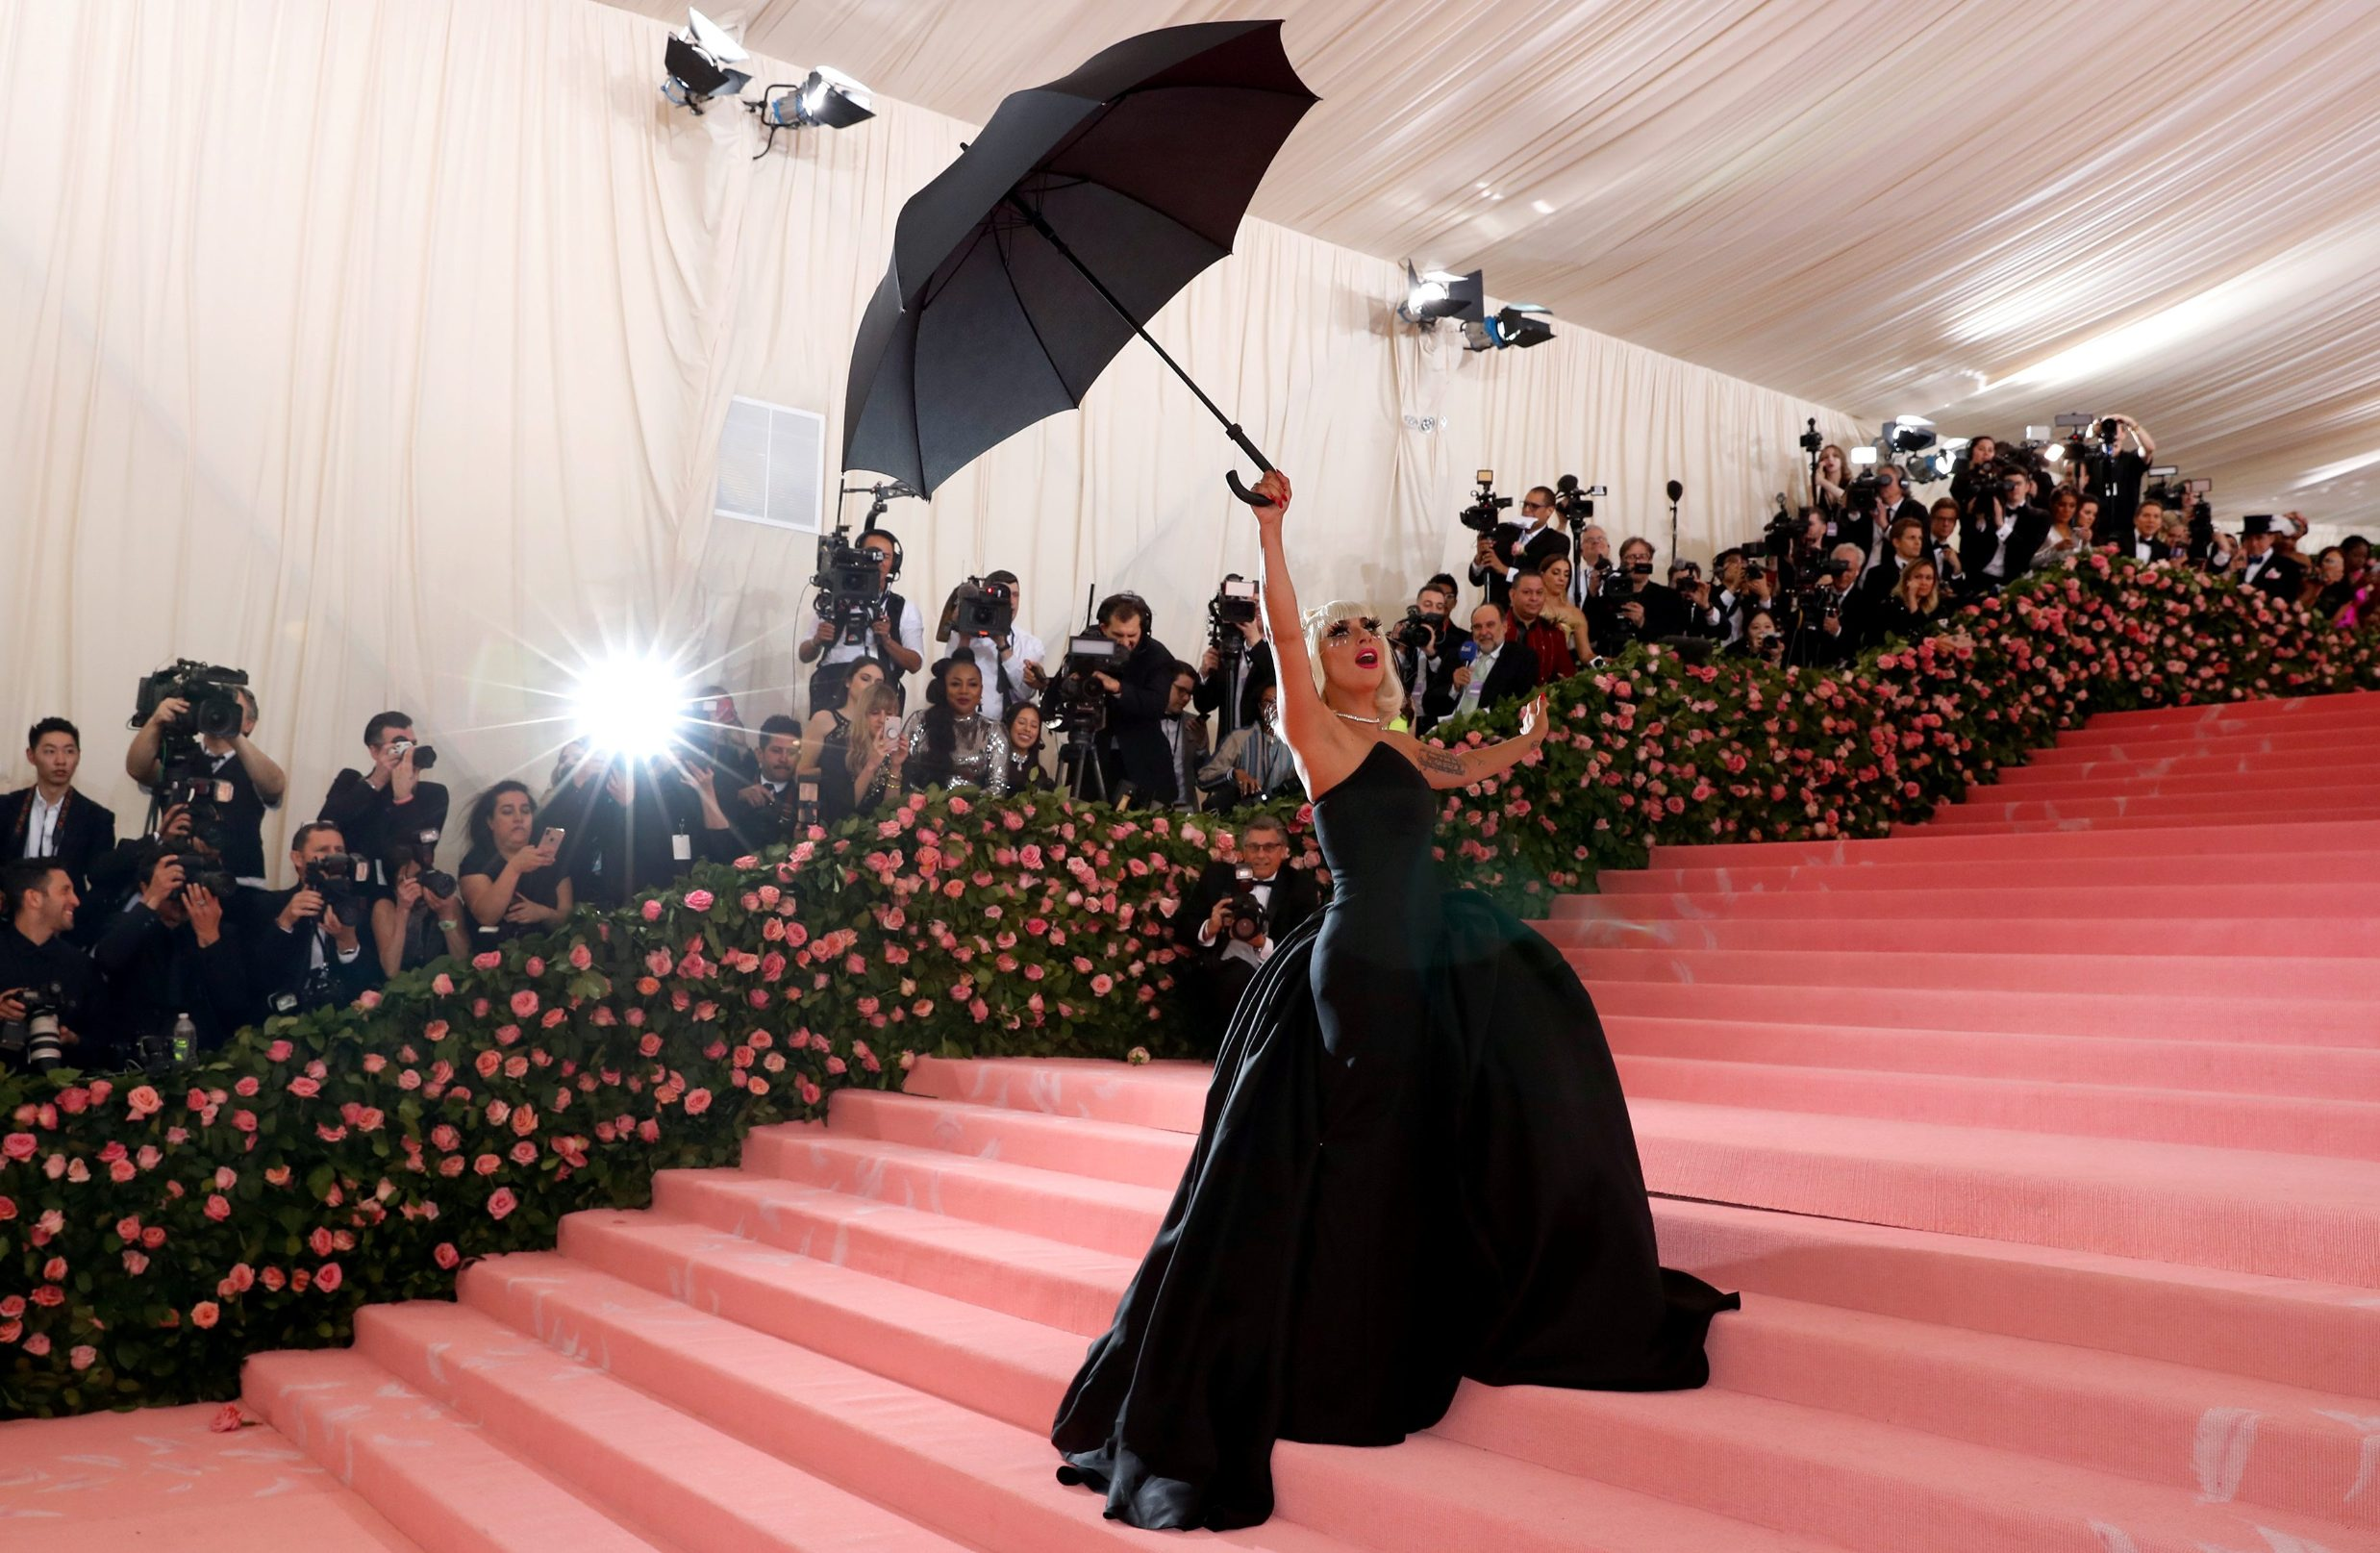 Metropolitan Museum of Art Costume Institute Gala - Met Gala - Camp: Notes on Fashion- Arrivals - New York City, U.S. Äi May 6, 2019 - Lady Gaga. REUTERS/Andrew Kelly     TPX IMAGES OF THE DAY